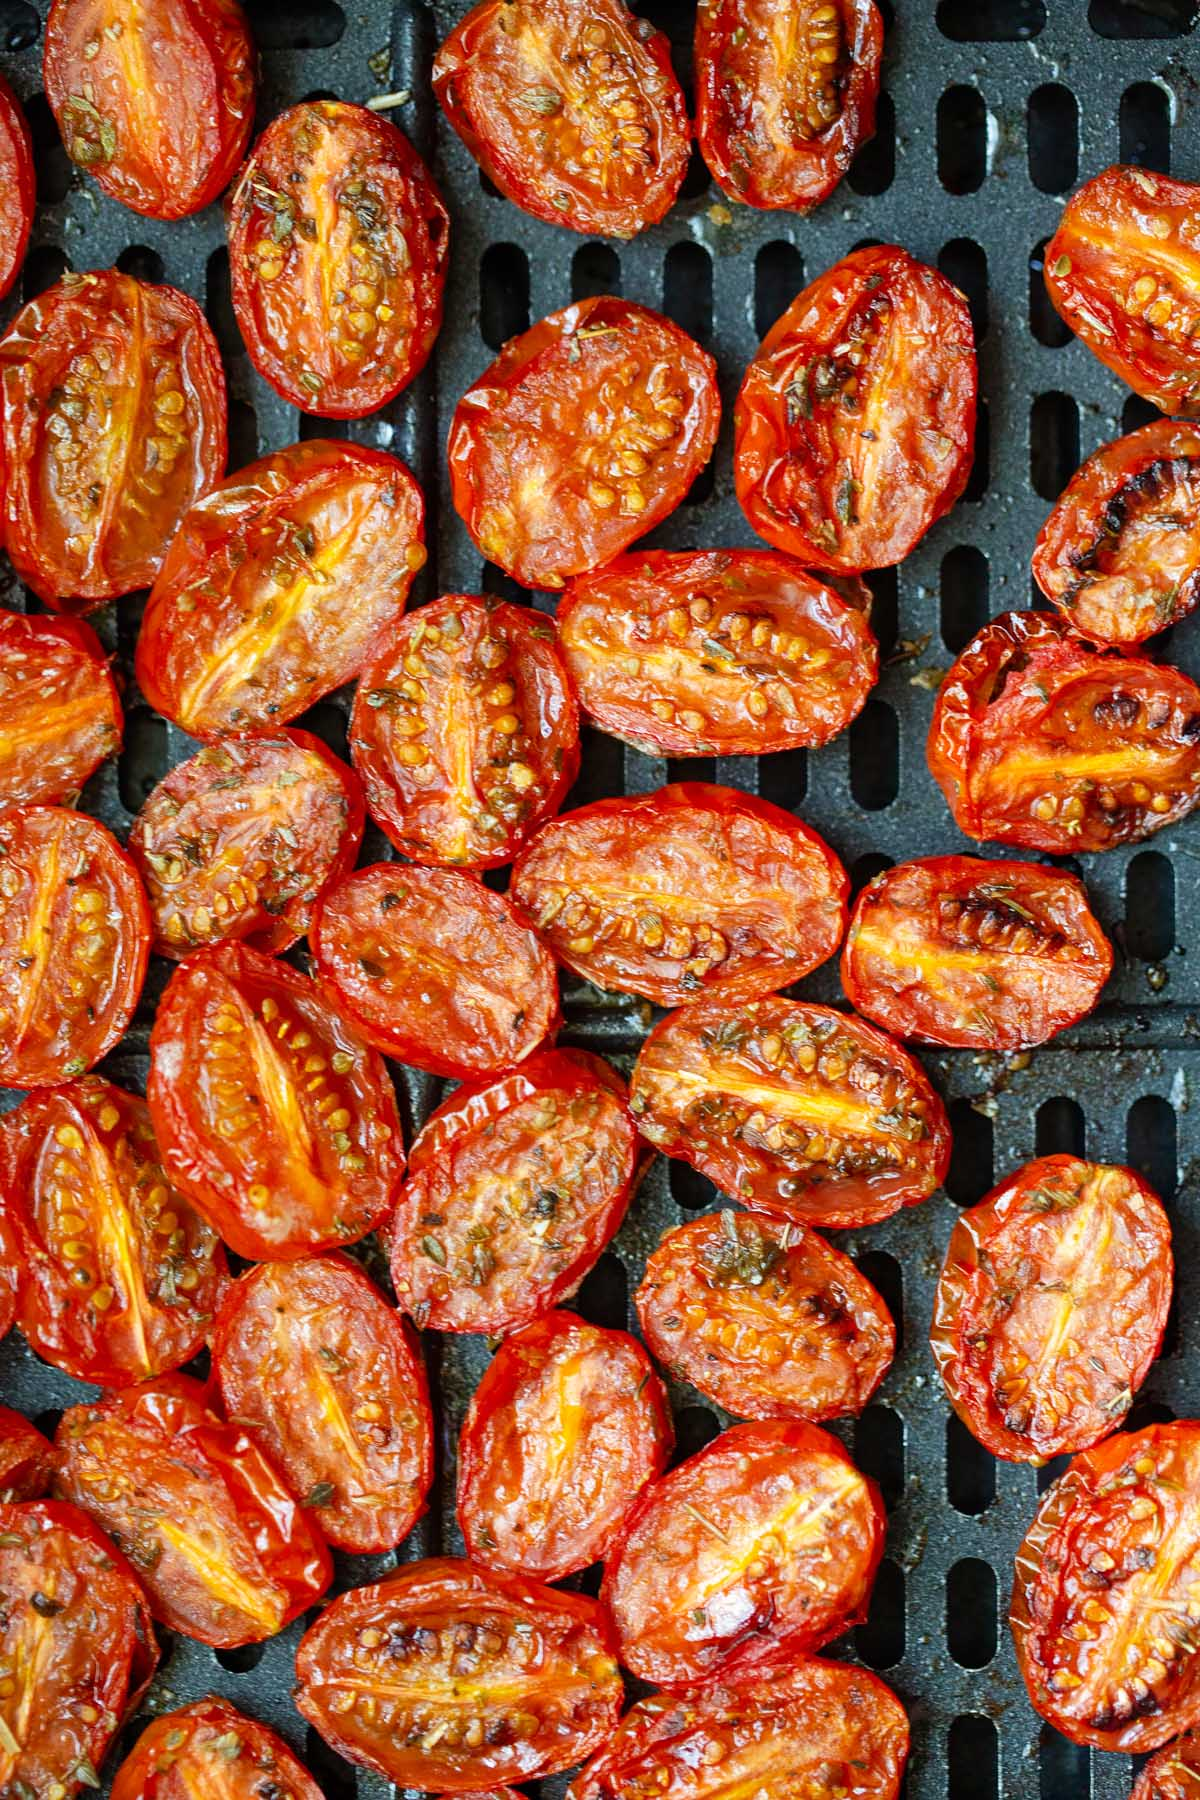 roasted tomatoes up close